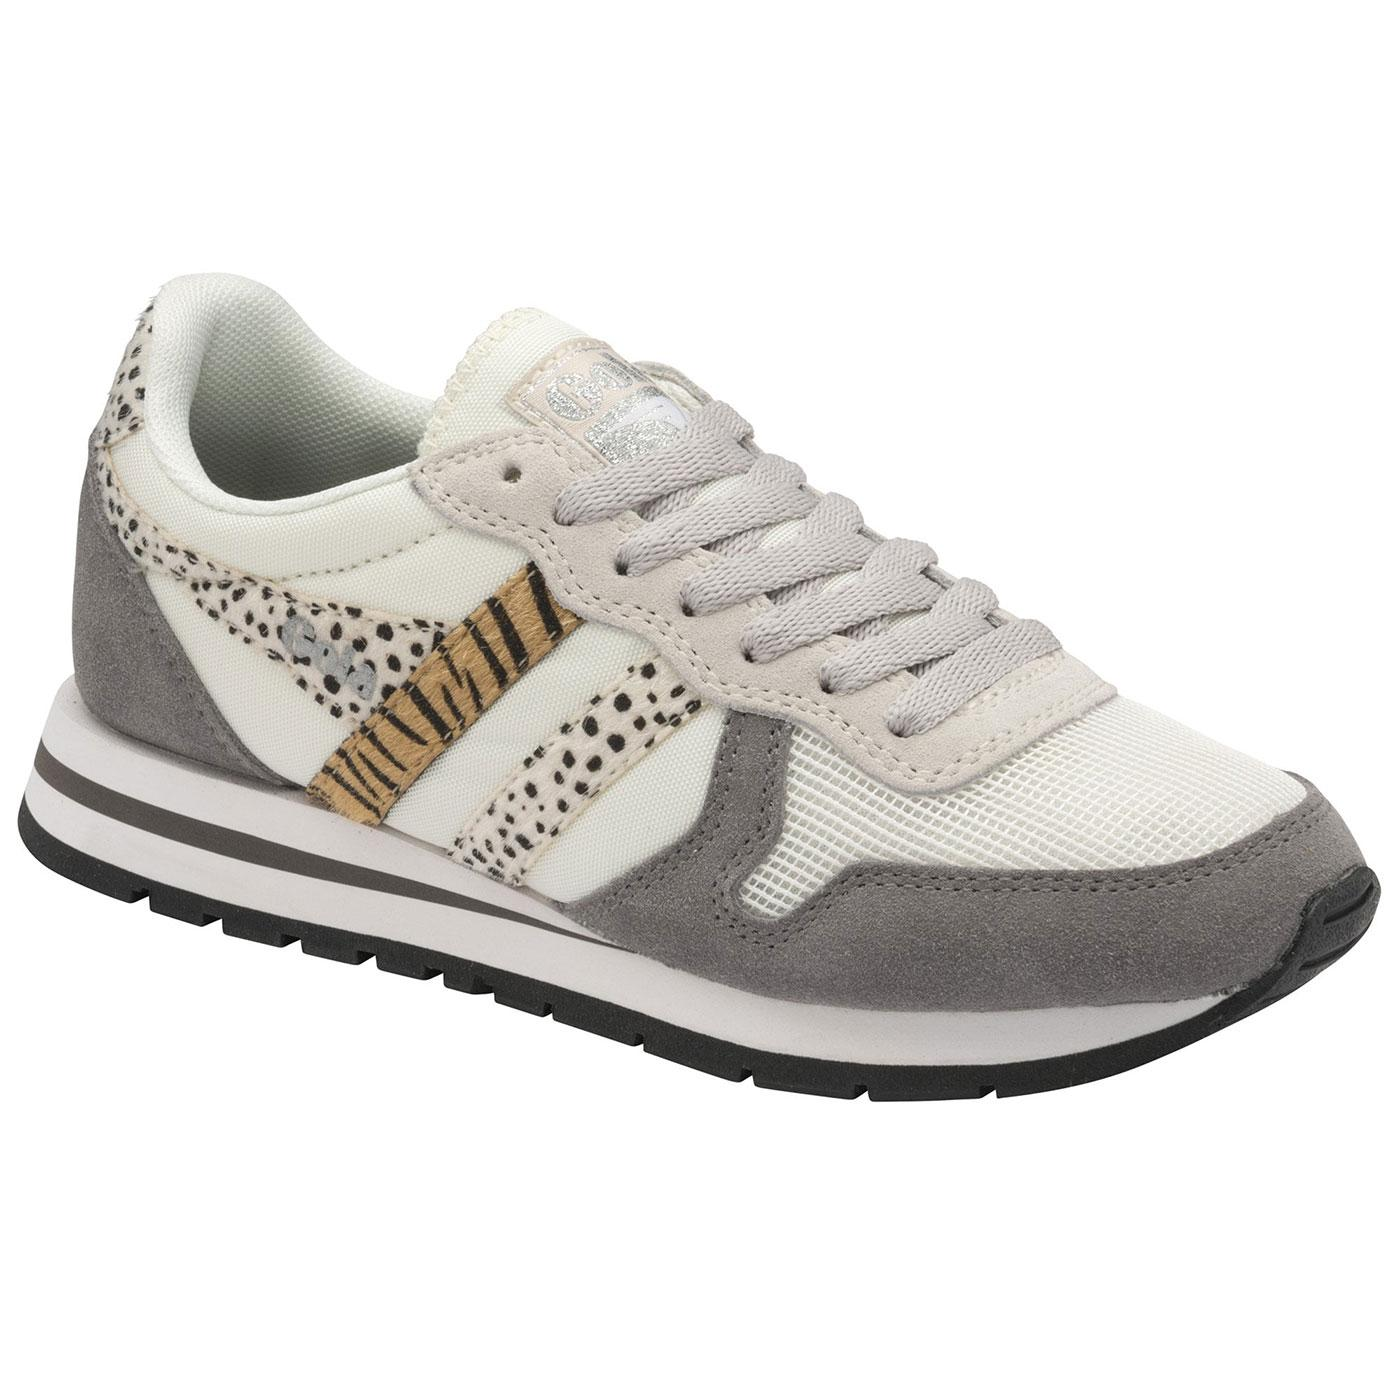 Daytona Safari GOLA Women's Retro Running Trainers